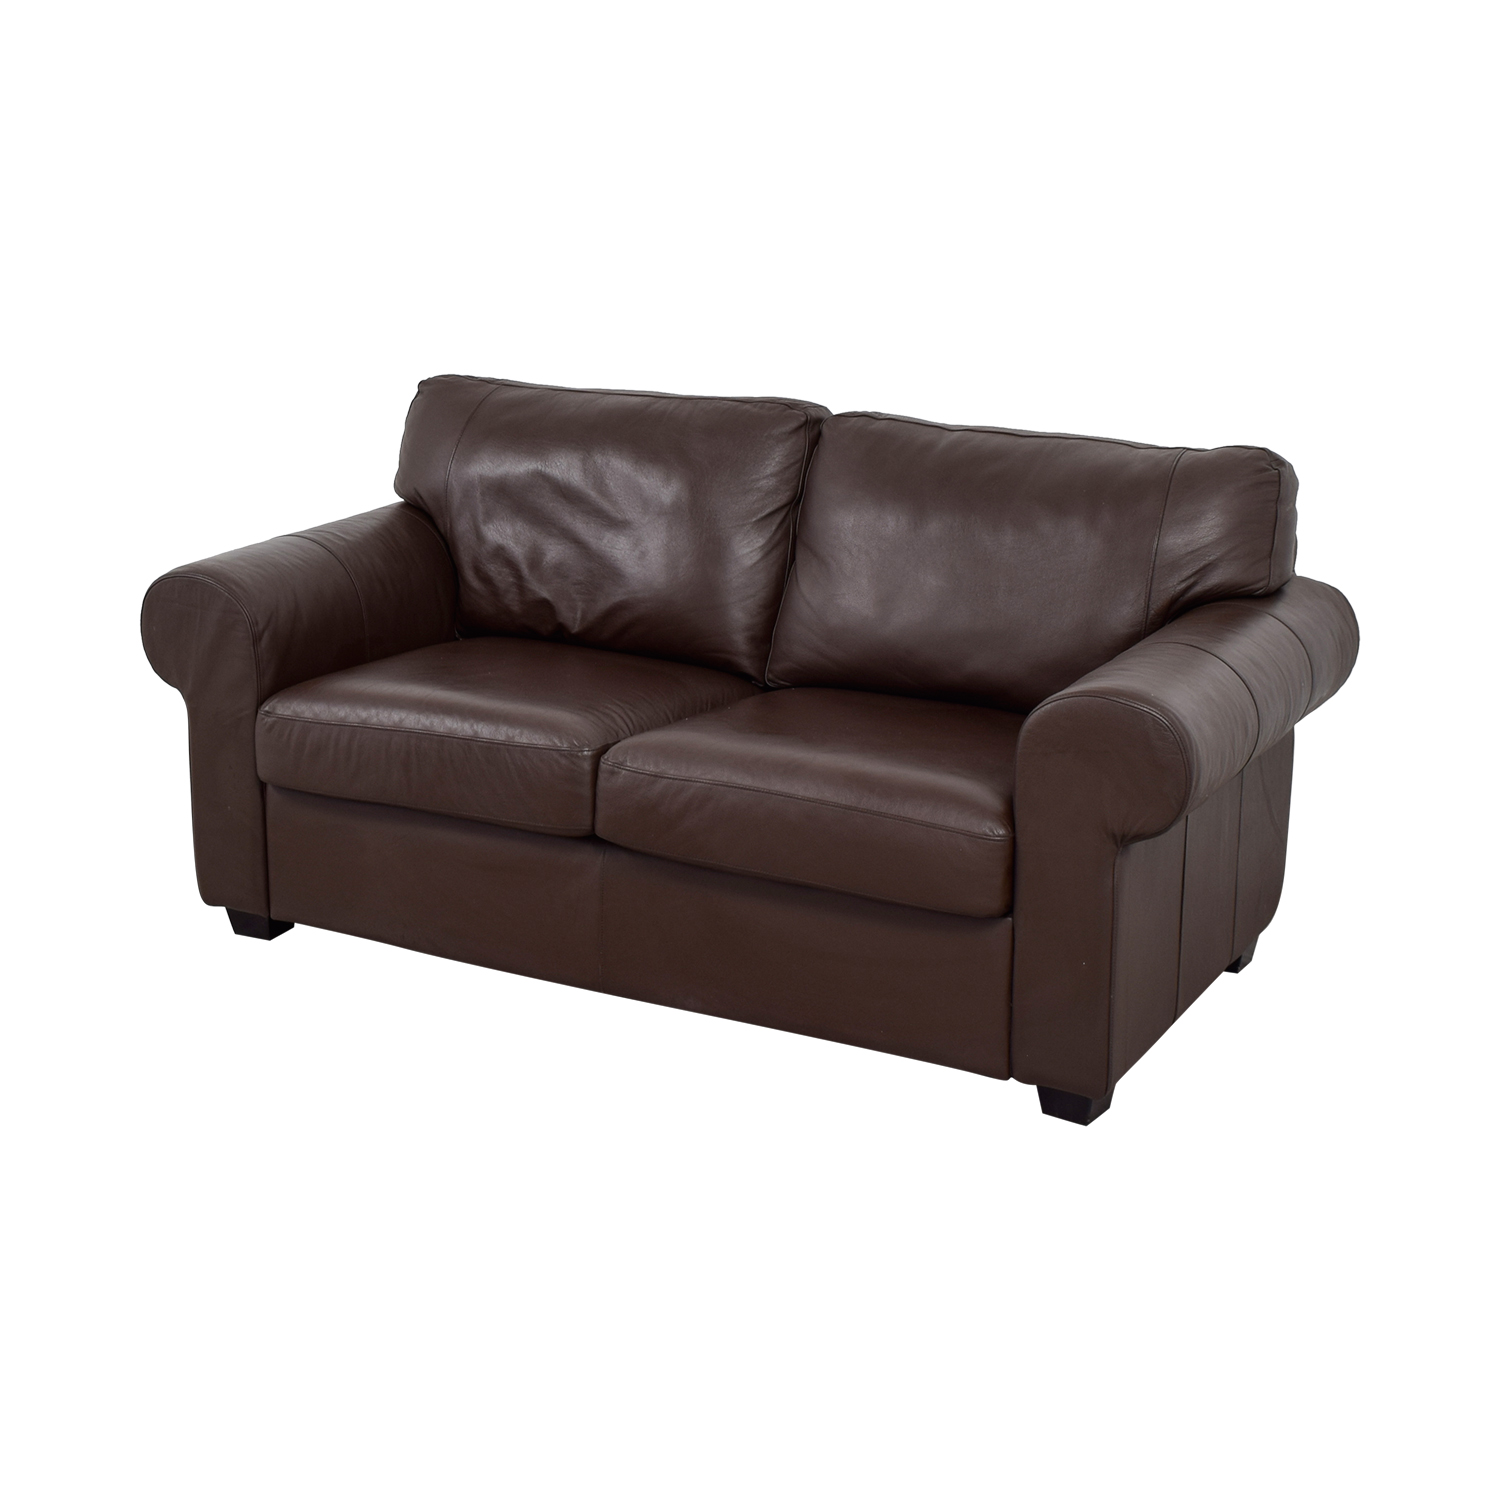 buy Brown Leather Curved Arm Loveseat